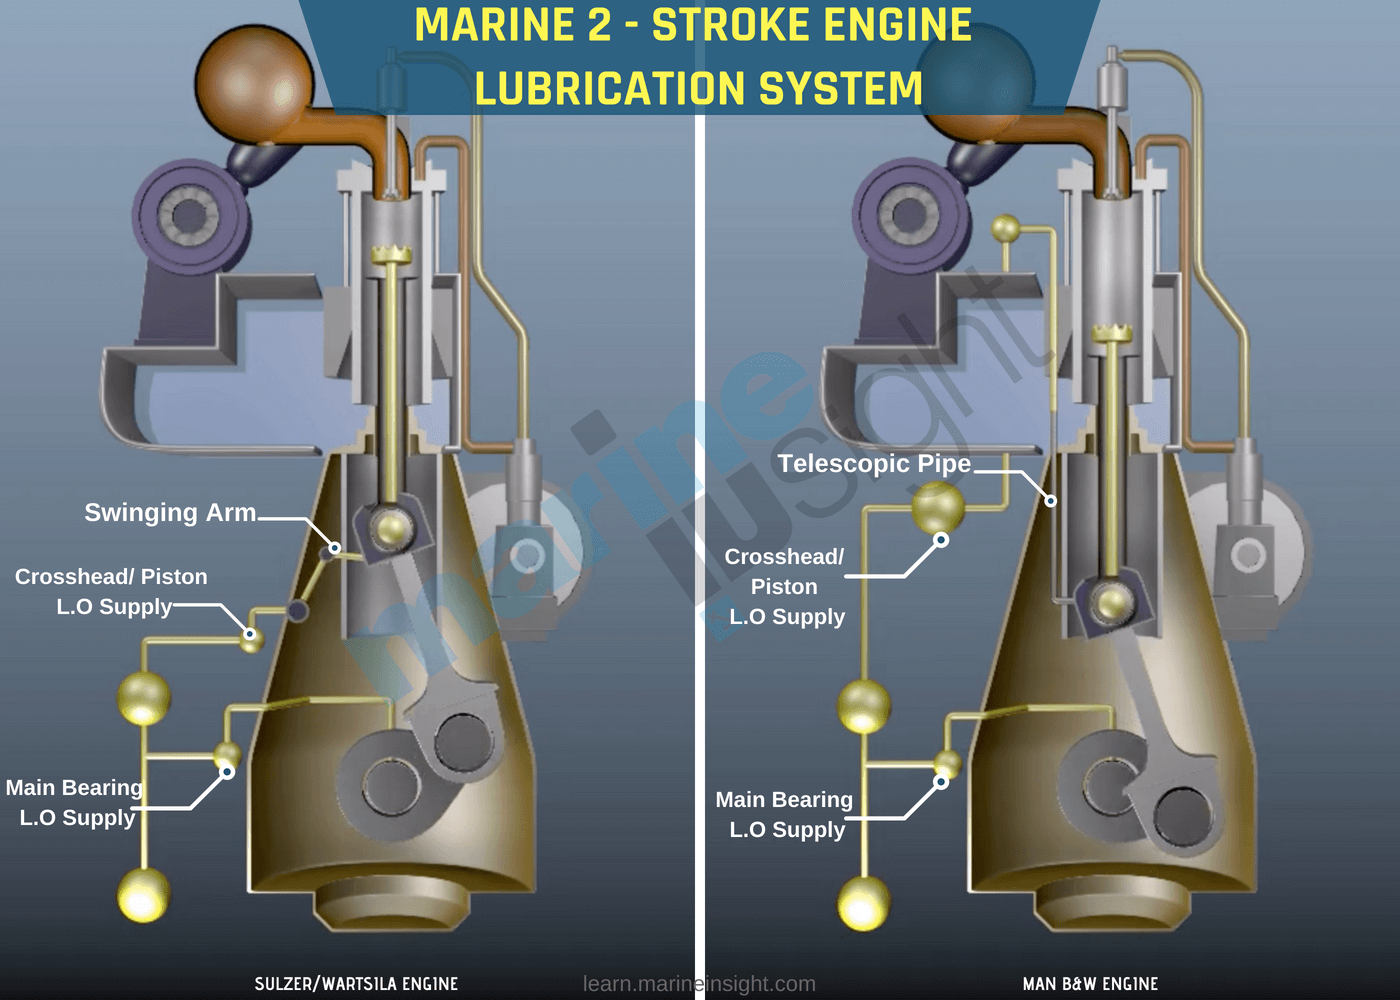 Ships Main Engine Lubrication System Explained Plants With Names In Addition Diagram Of Dual Kitchen Sink Drain